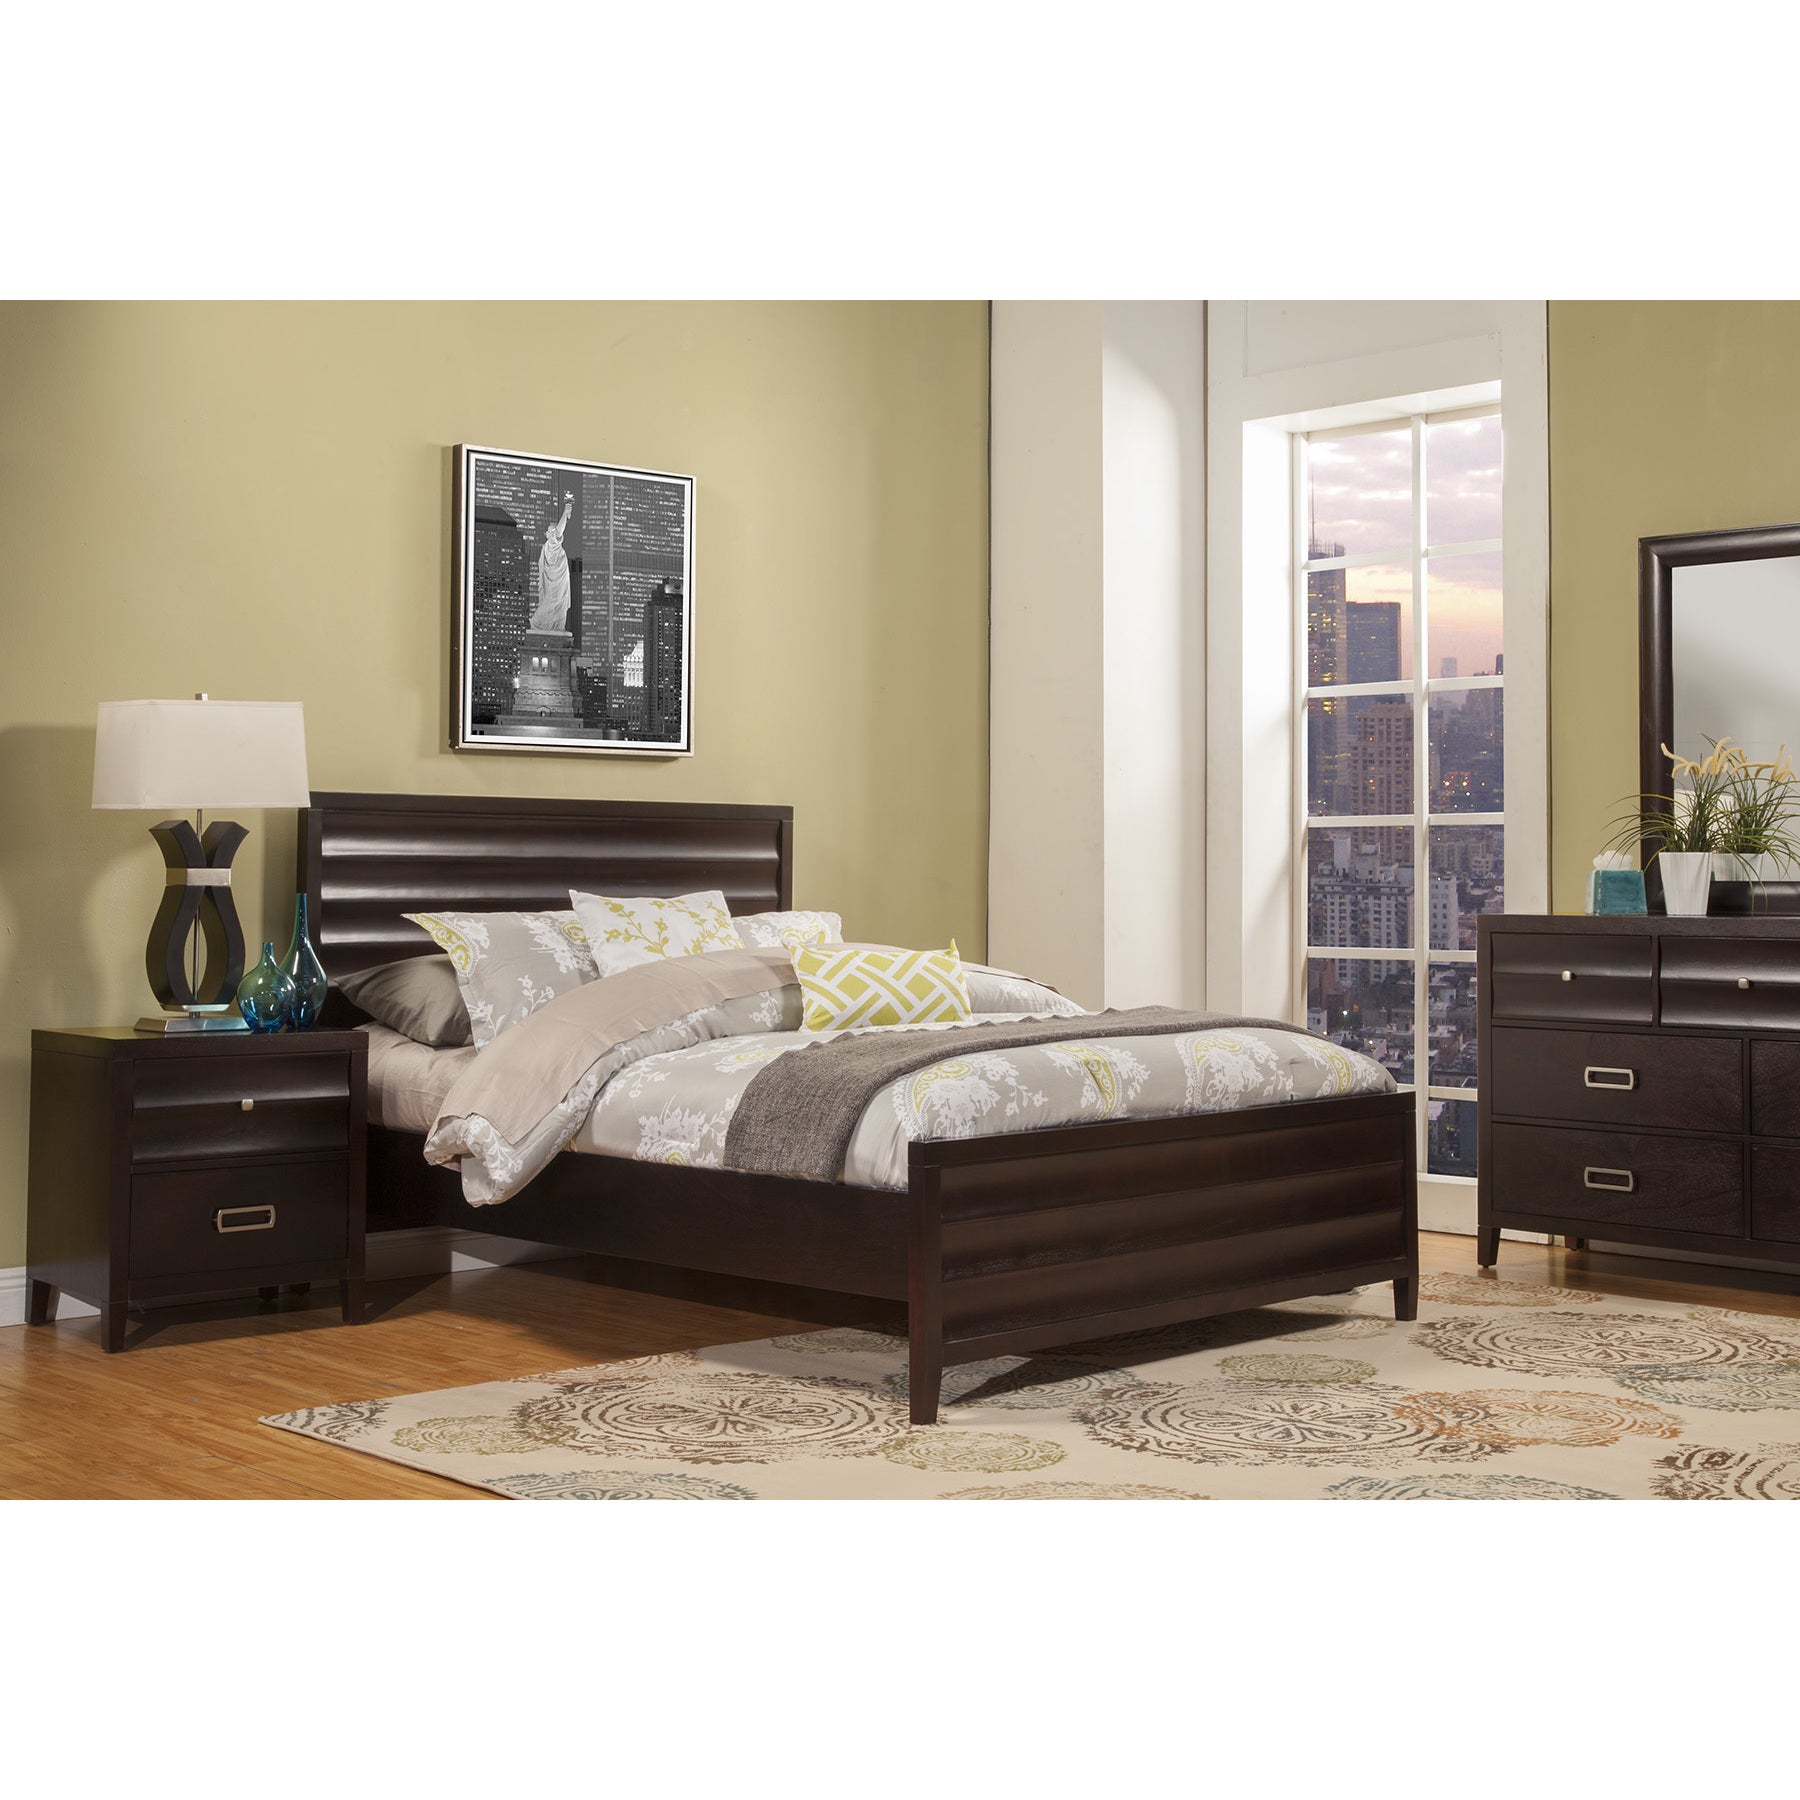 Alpine Furniture Alpine Legacy Black Wood Panel Bed (Queen)